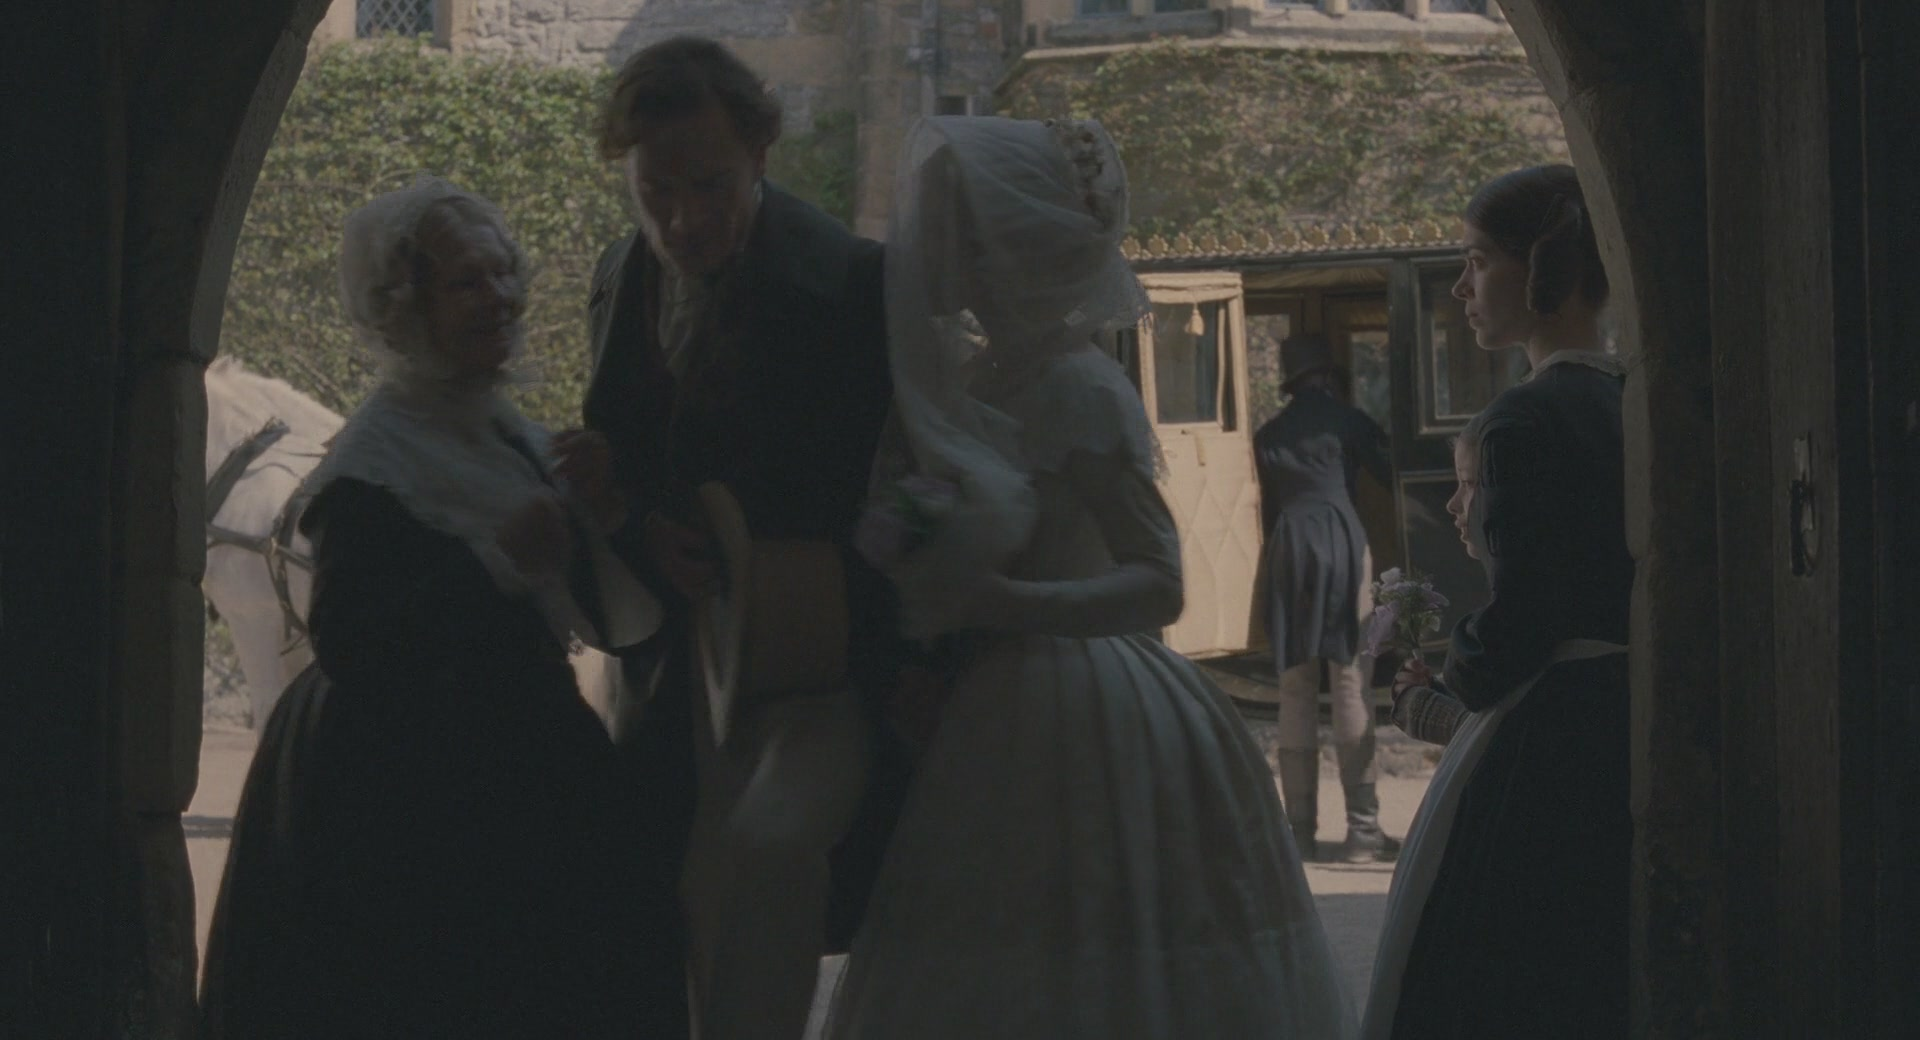 janes resilience to events in jane eyre Jane eyre is a book by charlotte brontë the jane eyre study guide contains a biography of charlotte bronte, literature essays, a complete e-text, quiz questions, major themes, characters, and a fu.